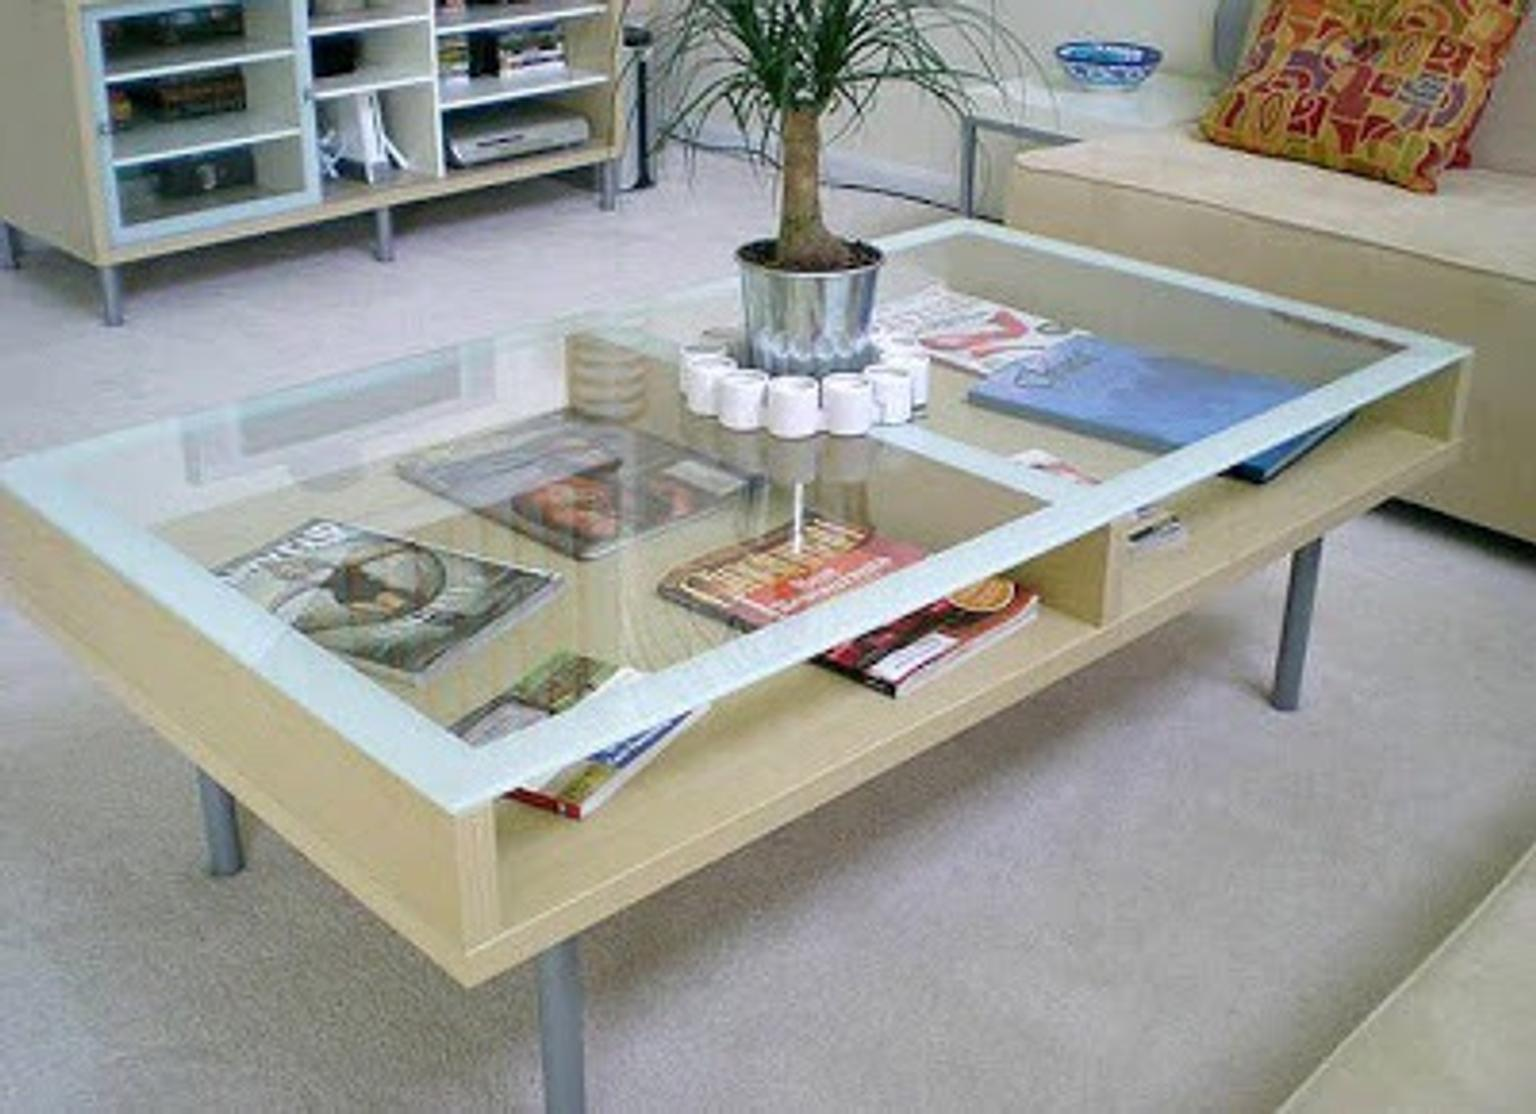 Ikea Magiker Coffee Table In M32 Trafford For 3000 For Sale Shpock